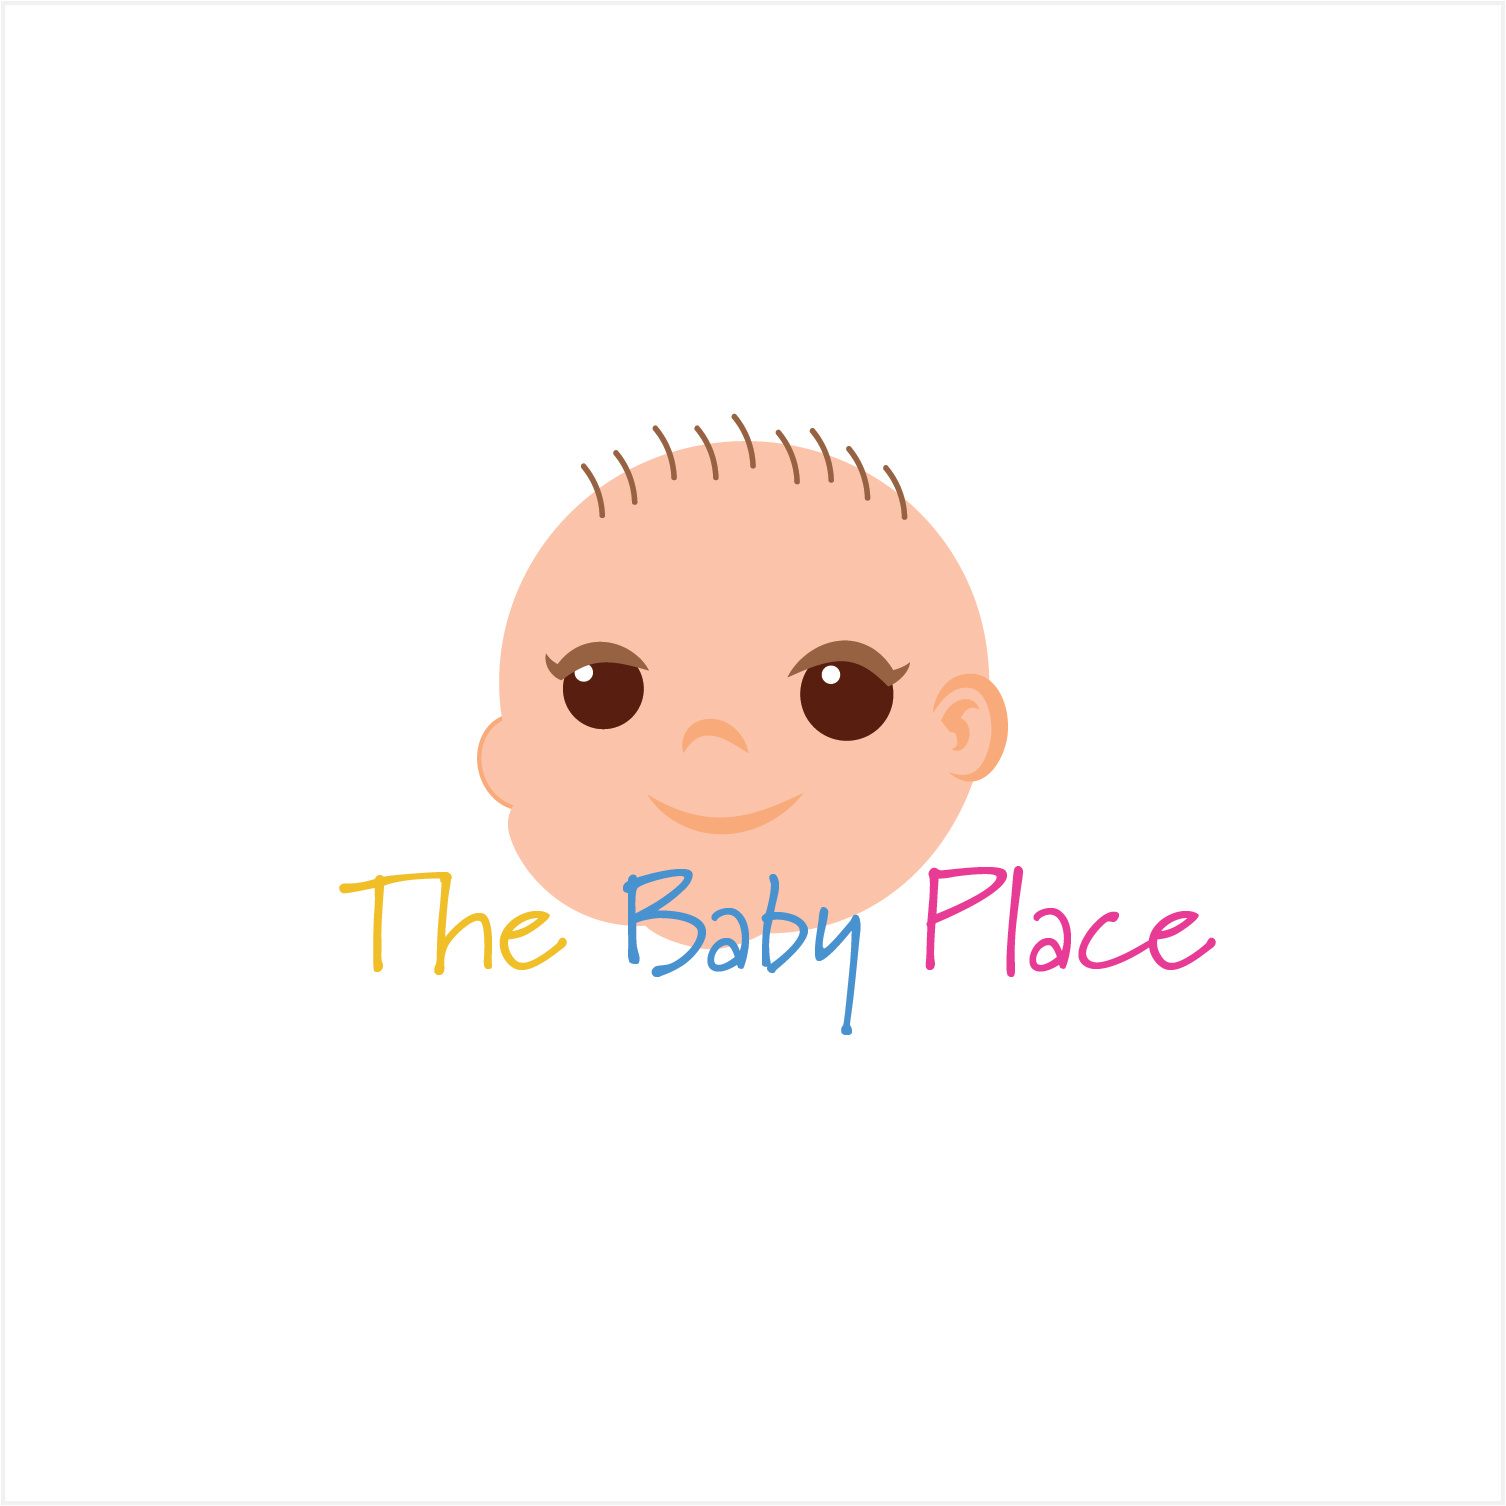 The Baby Place